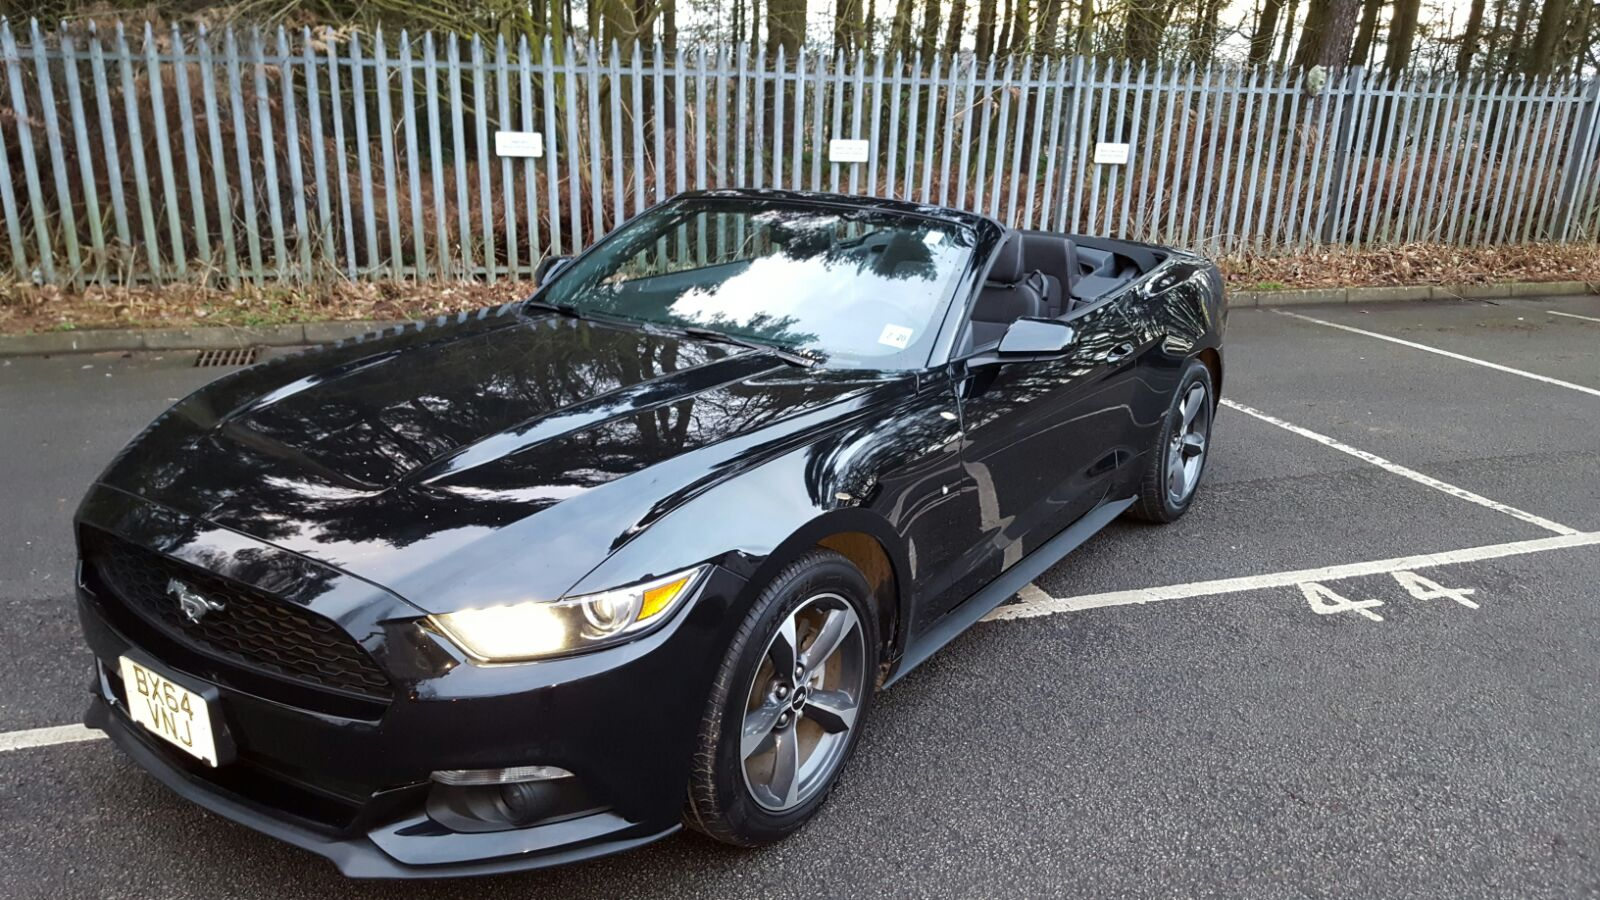 FORD MUSTANG (12/2014) - BLACK - lieu: